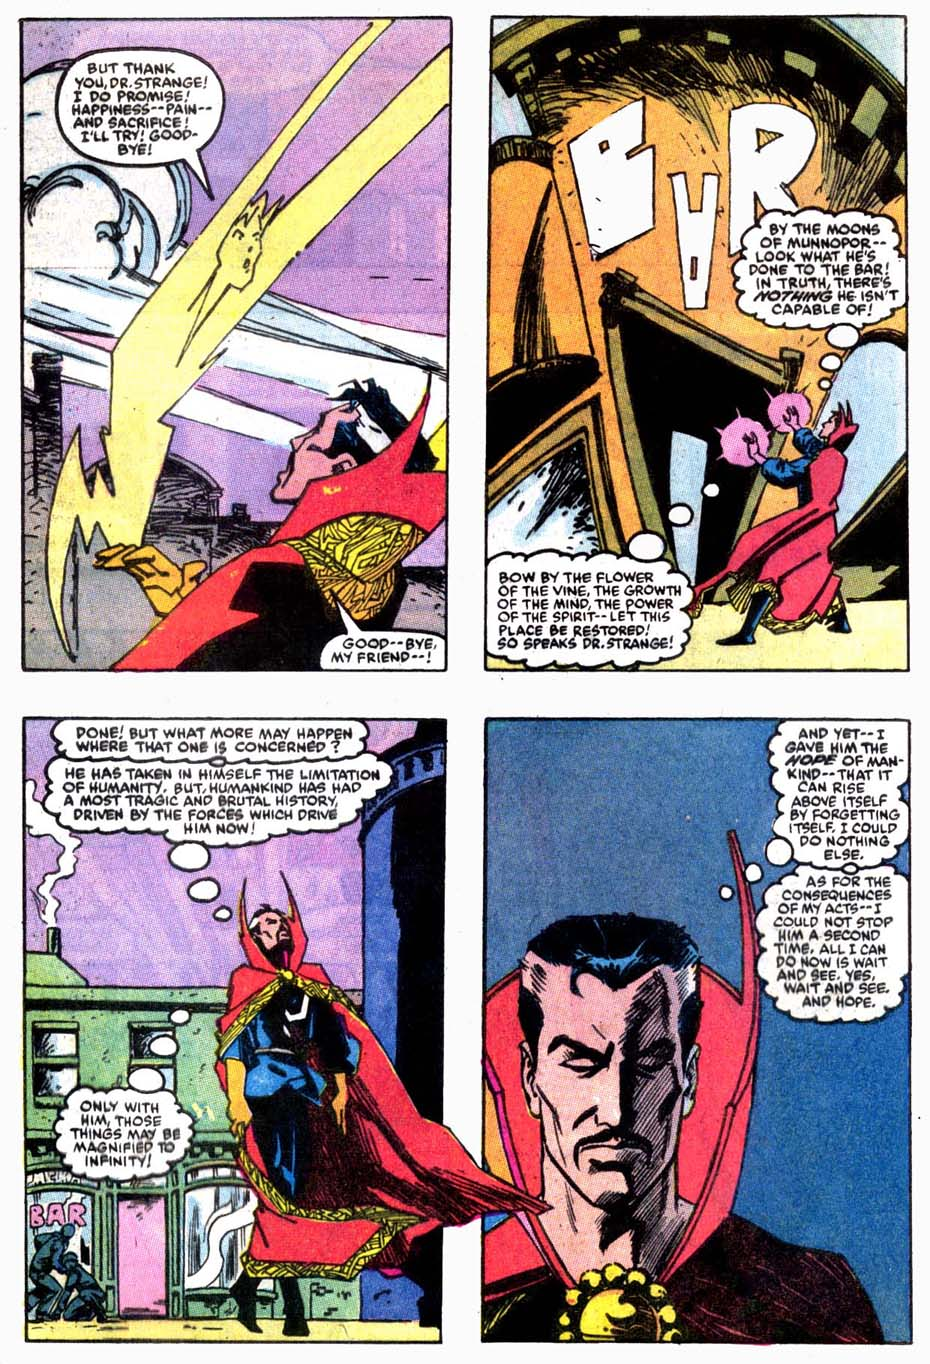 Doctor Strange (Classic) Fears Pre-Retcon Beyonder Rco02310